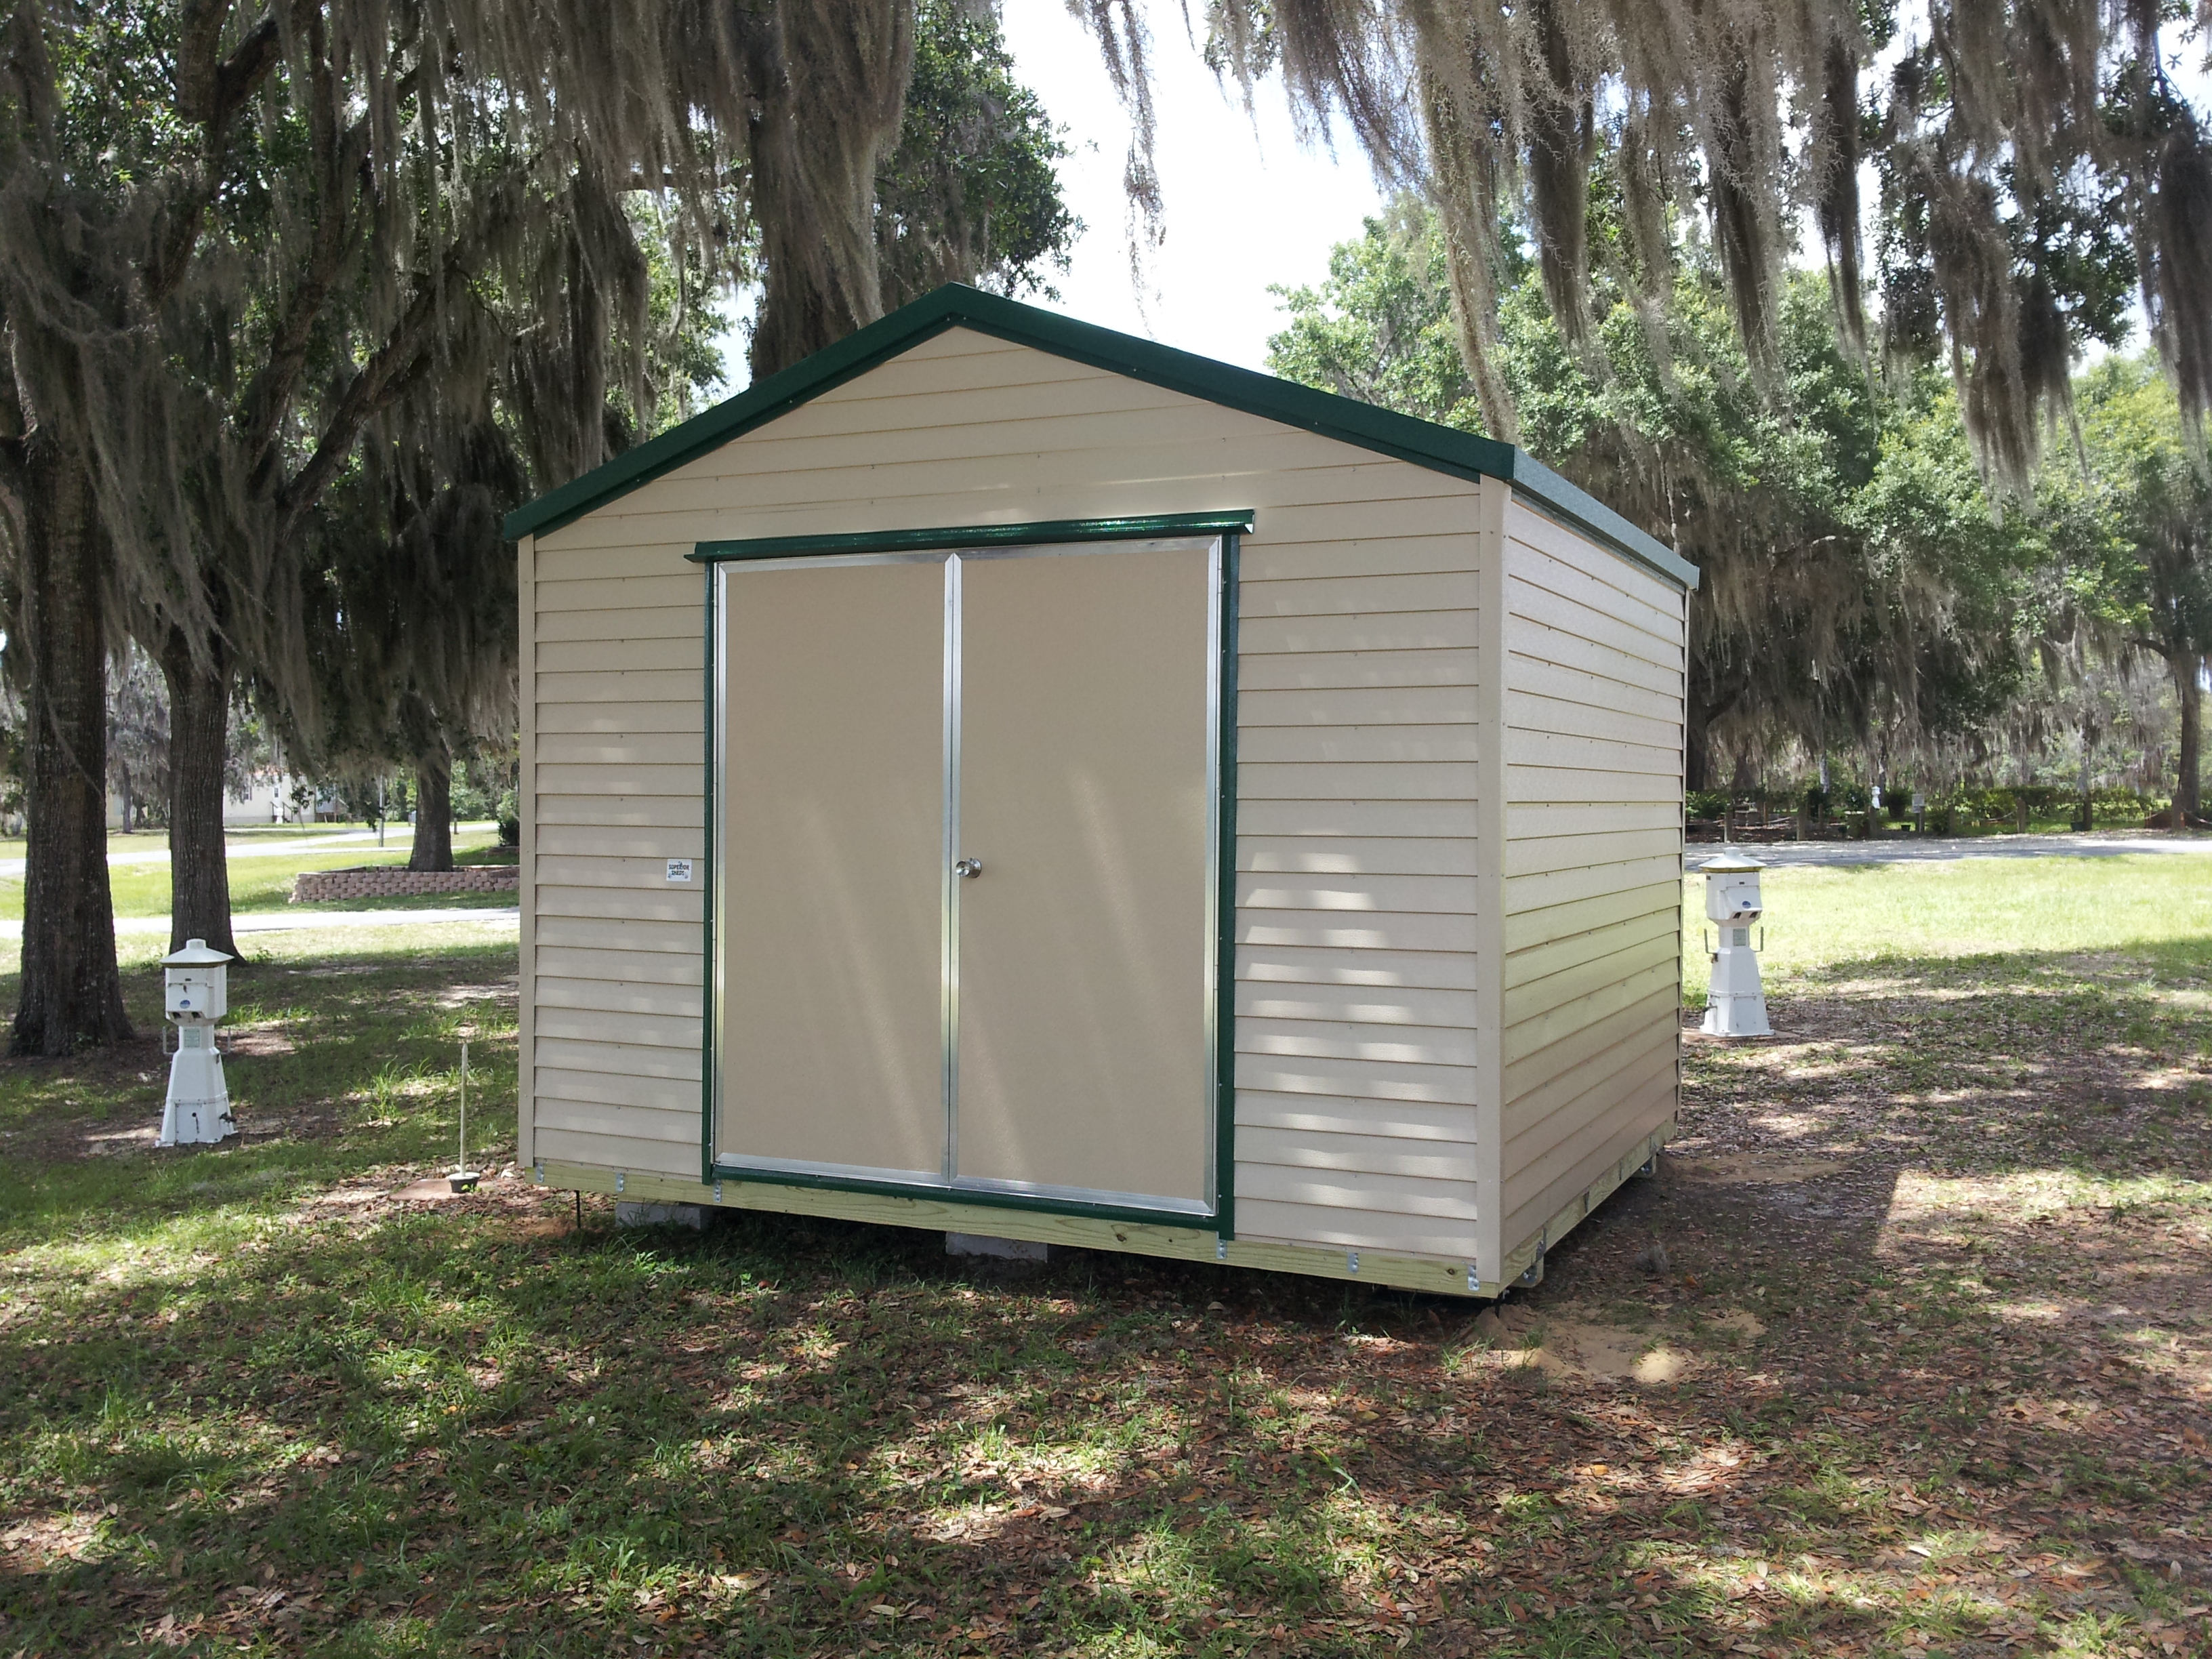 double shelters product animal kennel dog runs kennels shed sheds